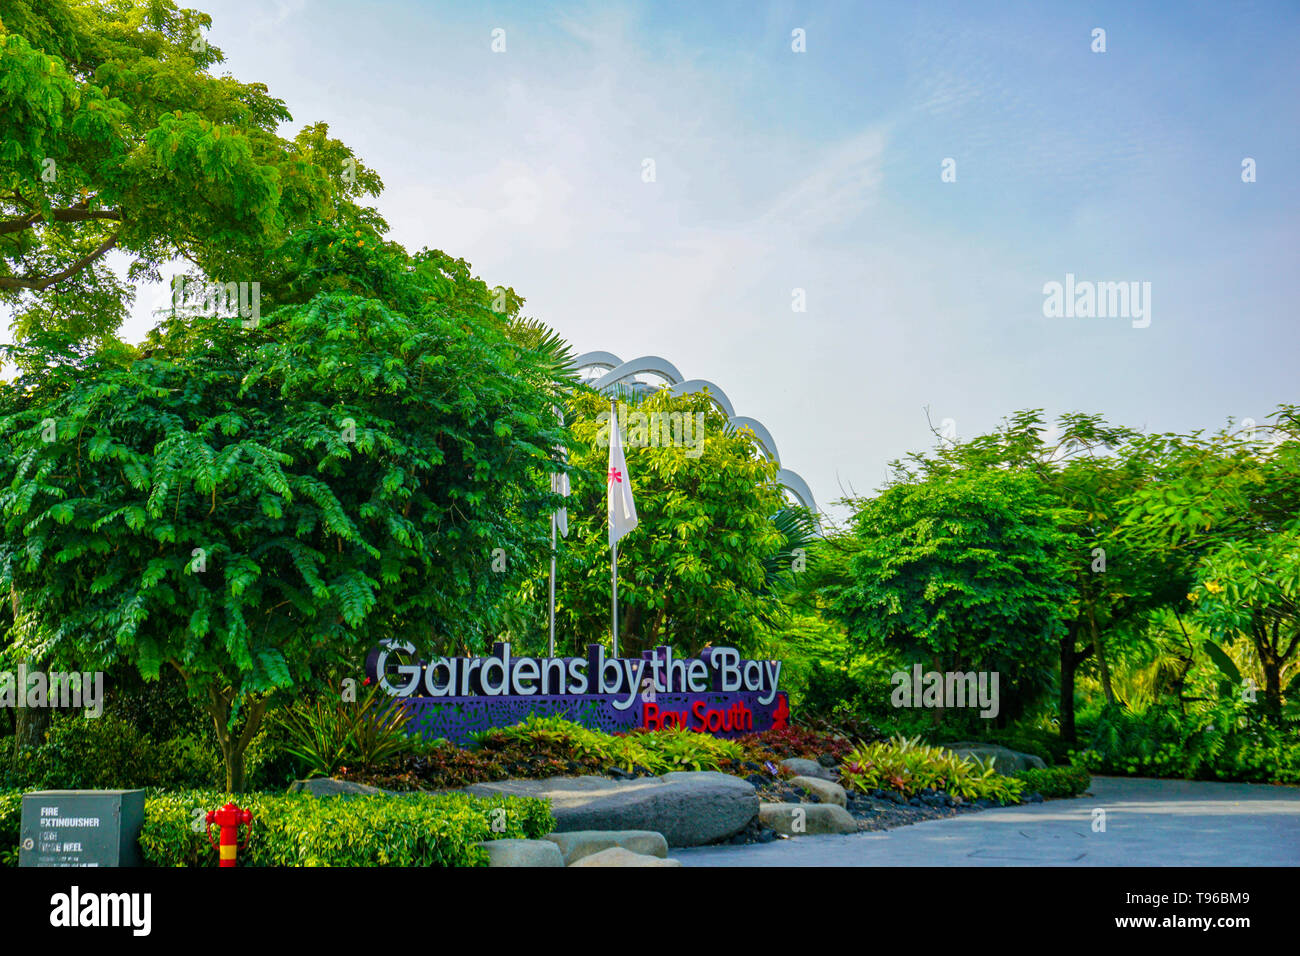 Gardens by the bay at Singapore, 14.08.2018 - Stock Image